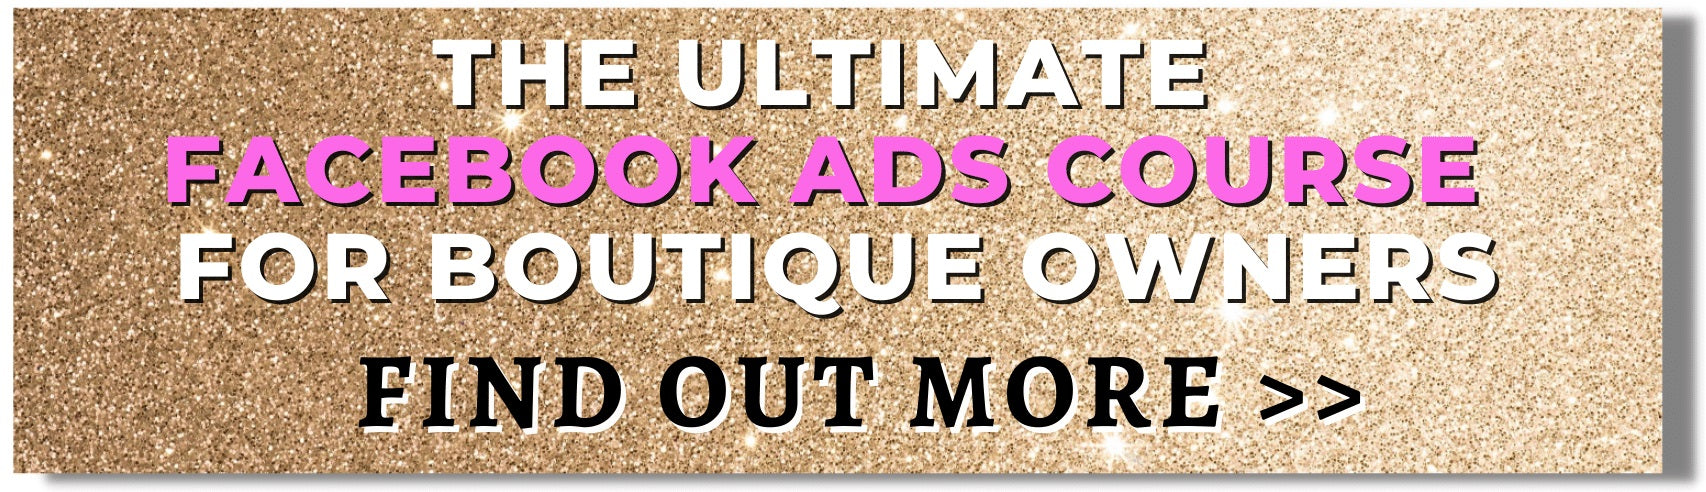 The Ultimate Facebook Ads Course for Boutique Owners 2021